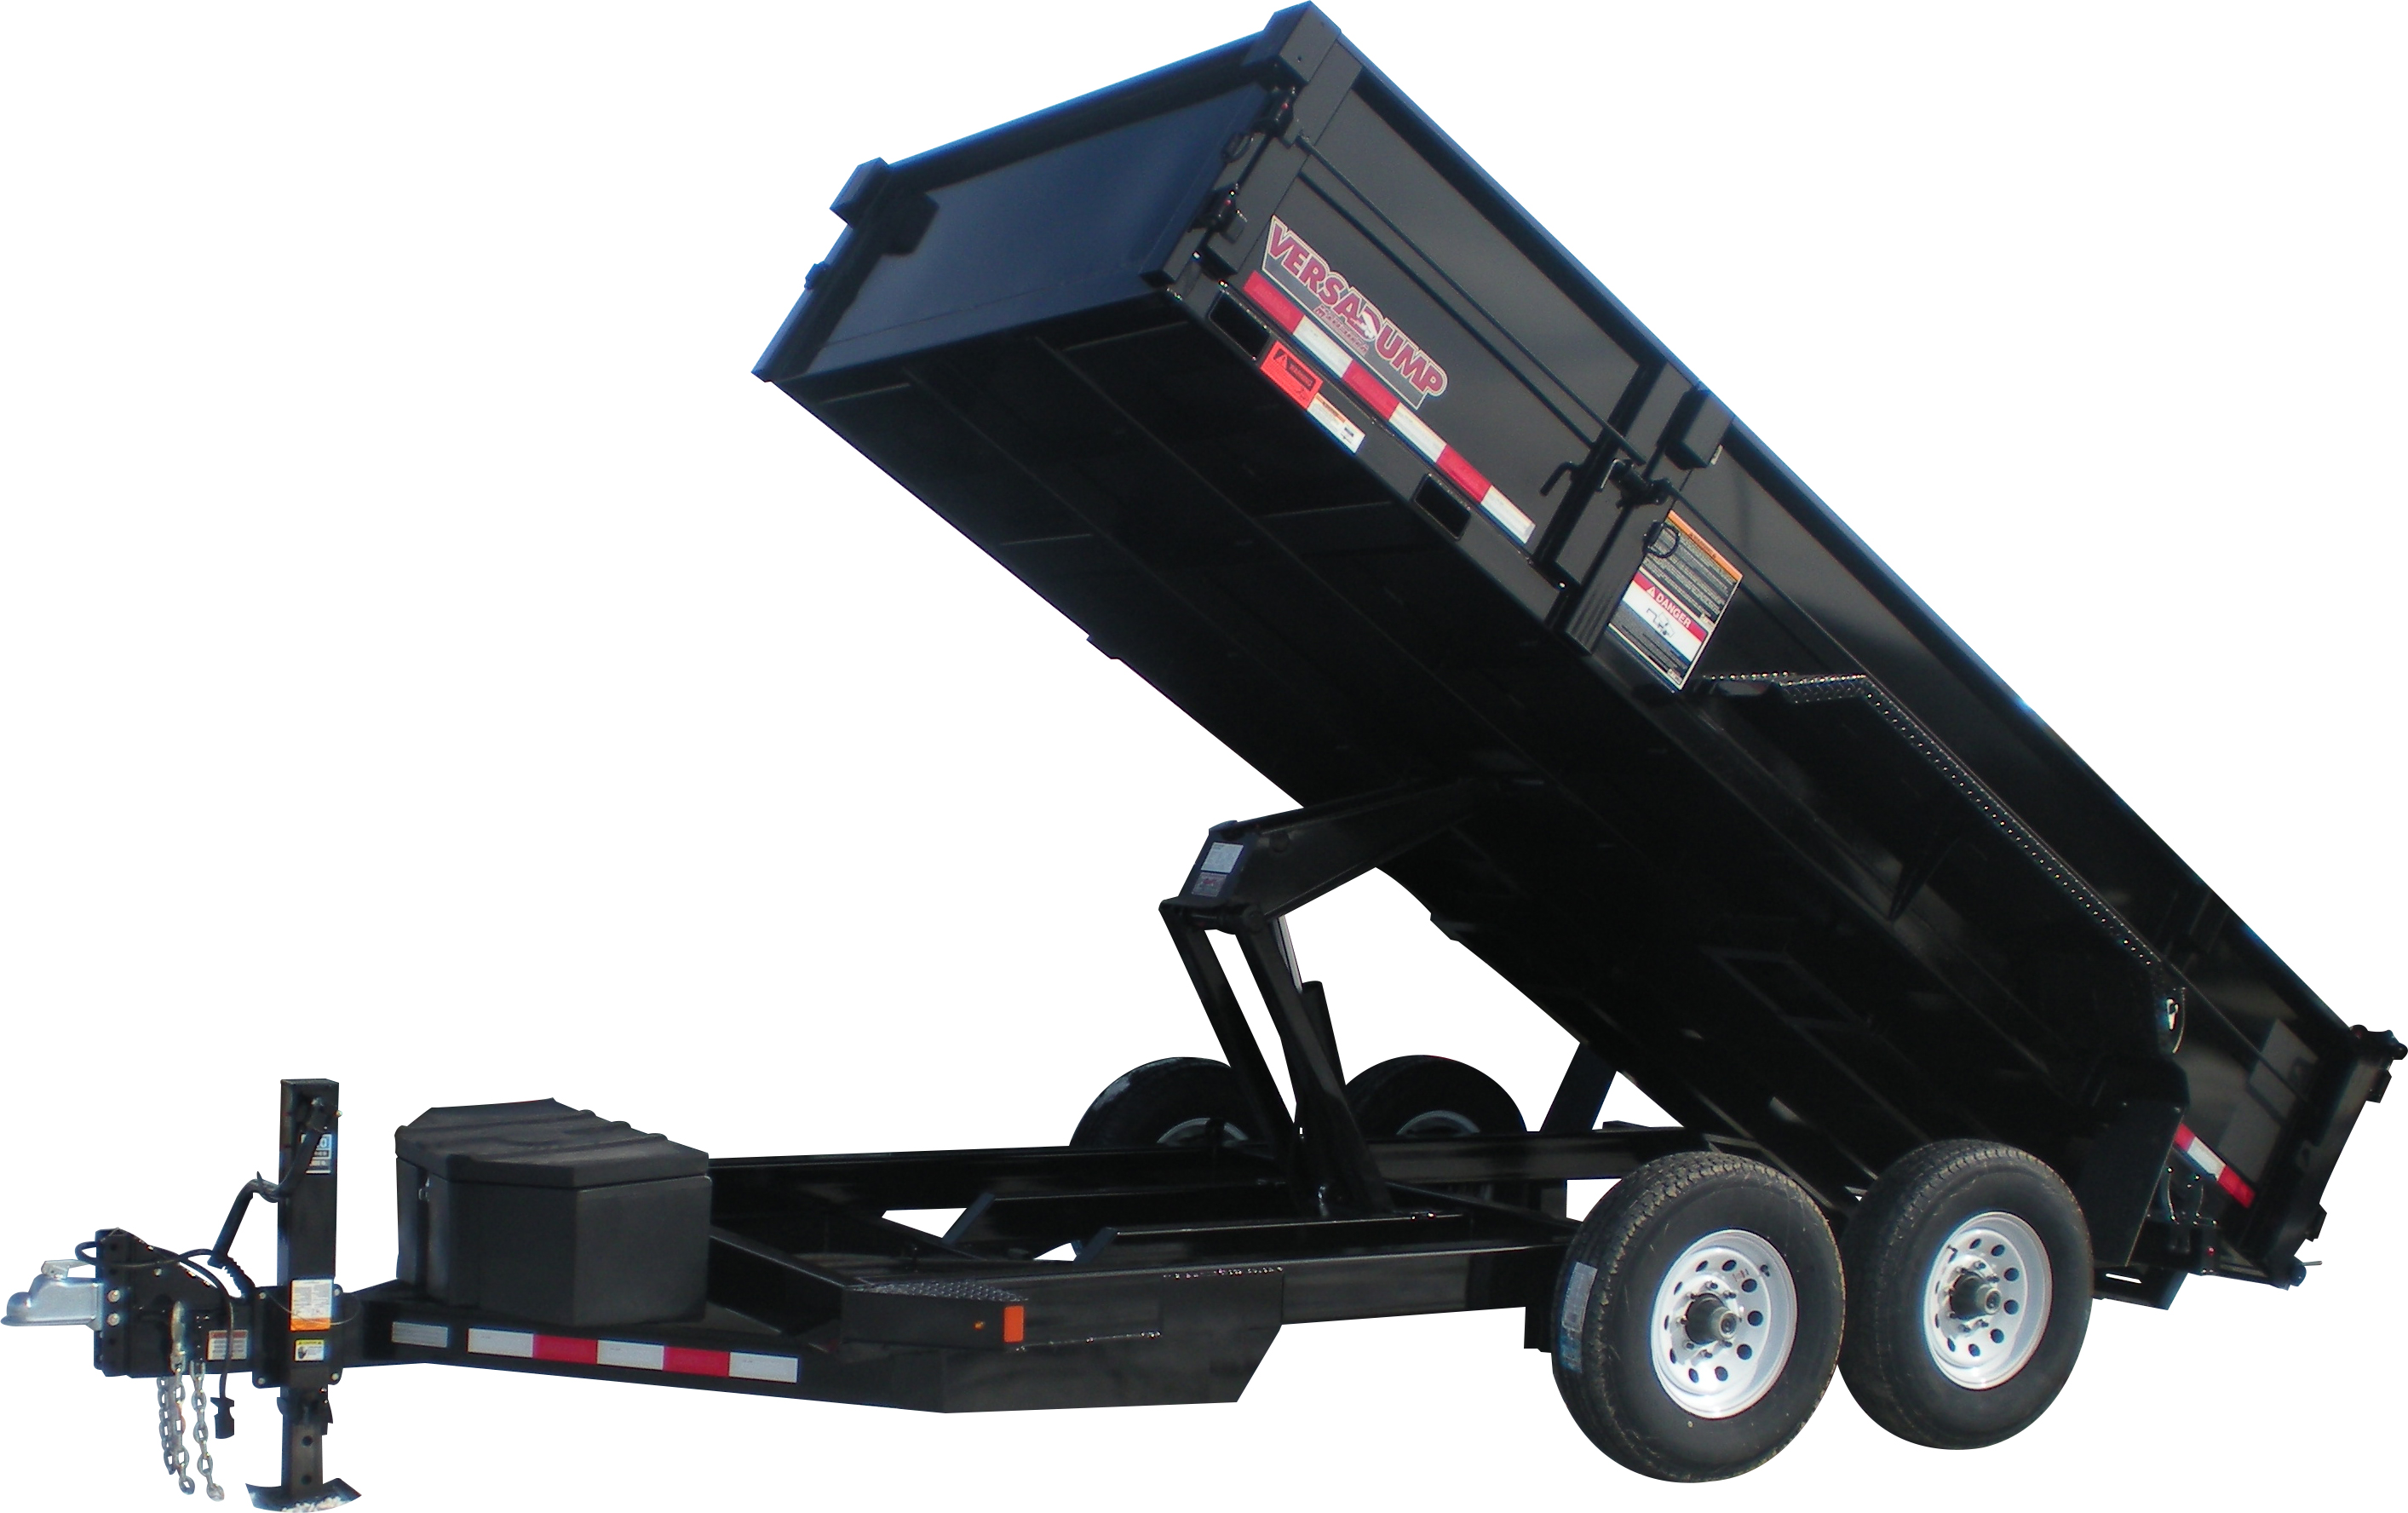 medium resolution of dump trailers midsota manufacturing on h h trailers roadrunner trailers cherokee trailers econoline cooker switch wiring diagram ndforesight co